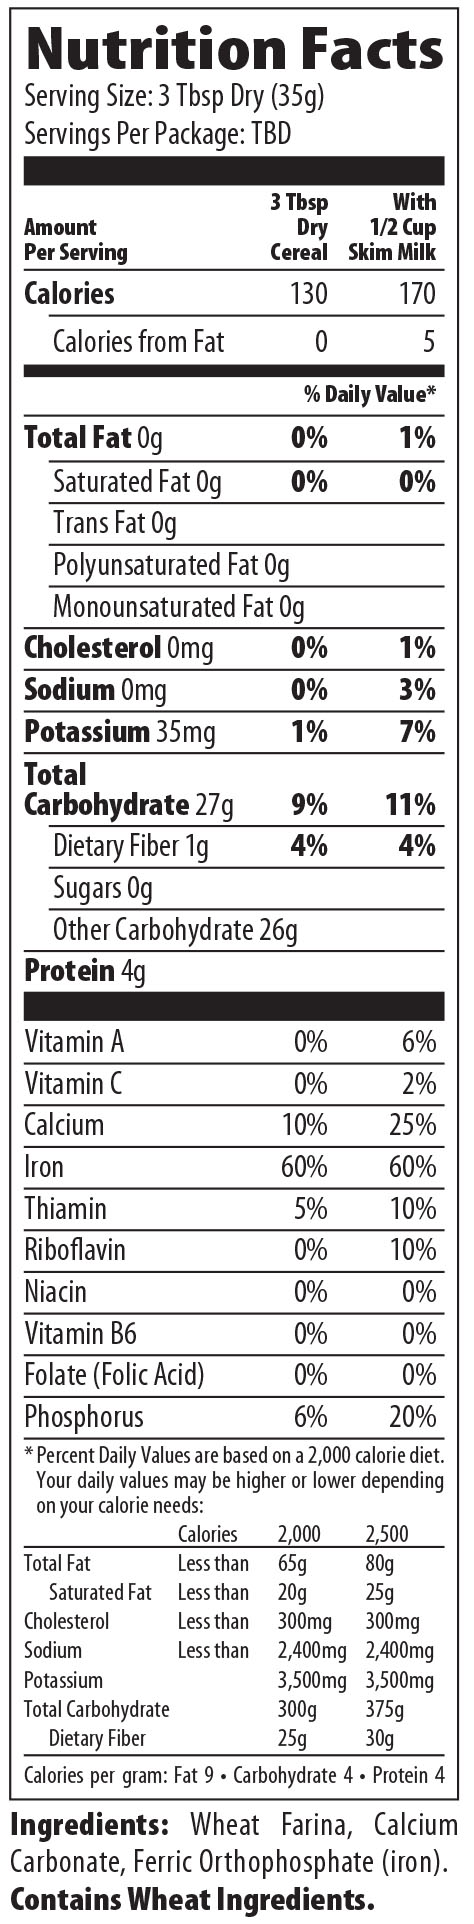 Nutrition Facts For Creamy Hot Wheat Hot Cereal By Malt O Meal